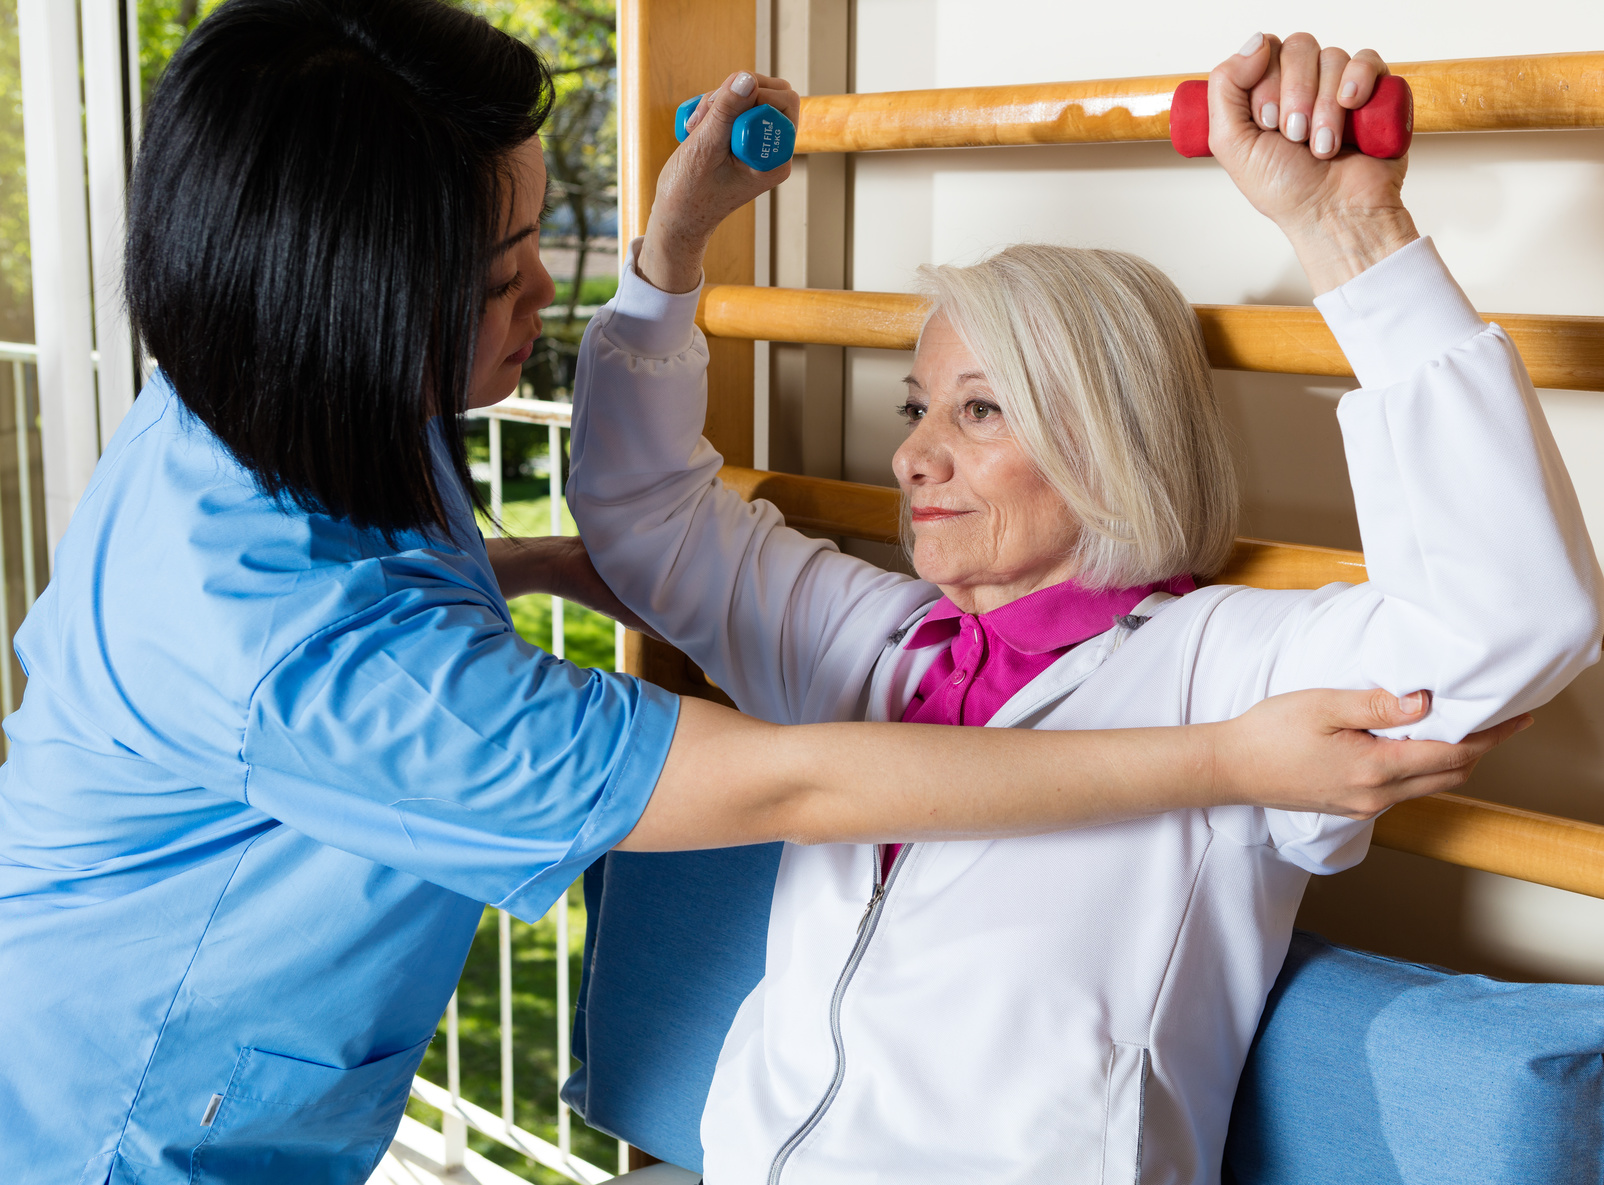 Woman in 60s lifting weighs at hospital gym, helped by nurse.